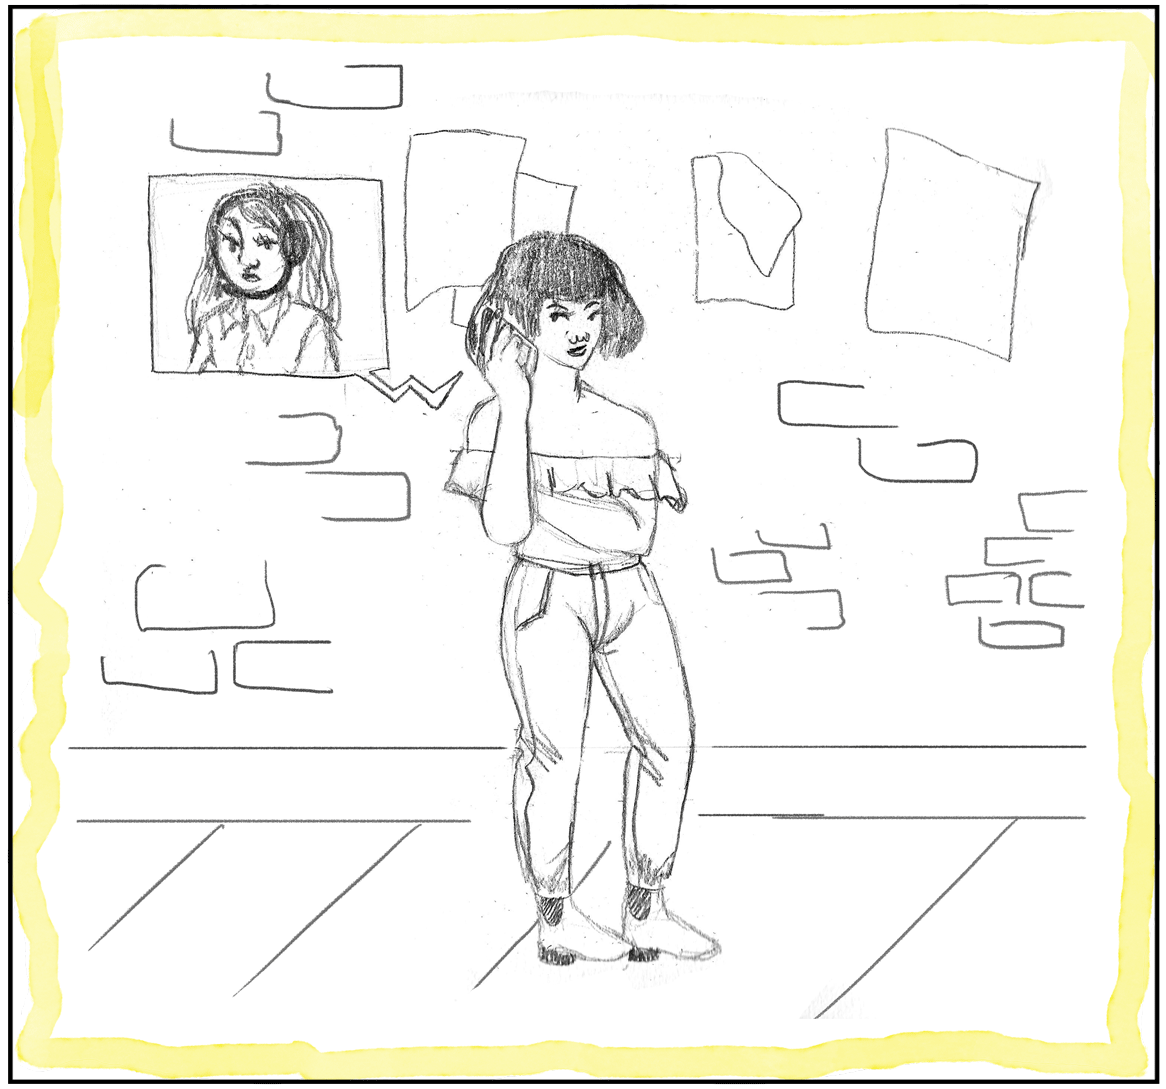 An illustration of a woman reporting an incident to 911.